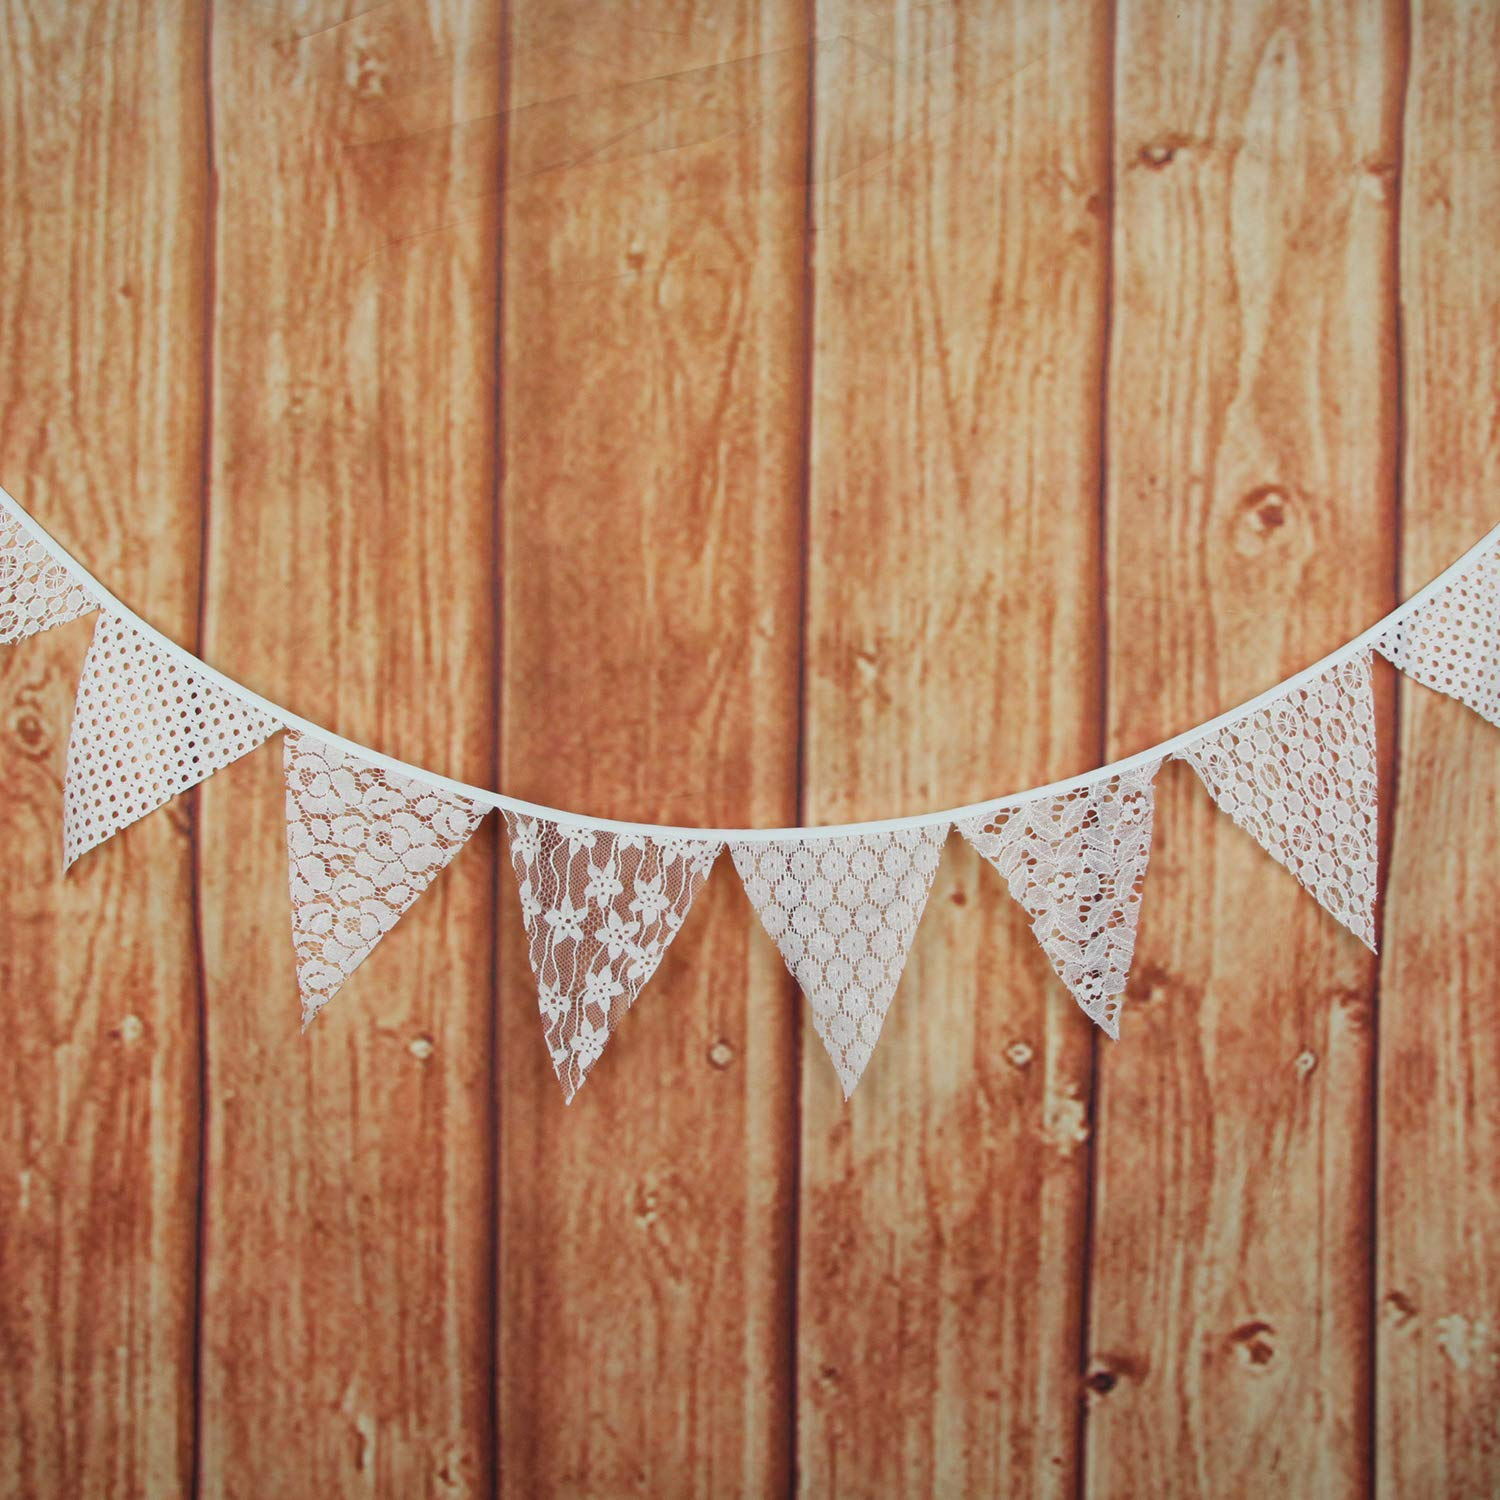 Off-White Birthday Party Outdoor /& Home Decoration INFEI 3M//9.8Ft Mixed White Lace Fabric Flags Bunting Banner Garlands for Wedding